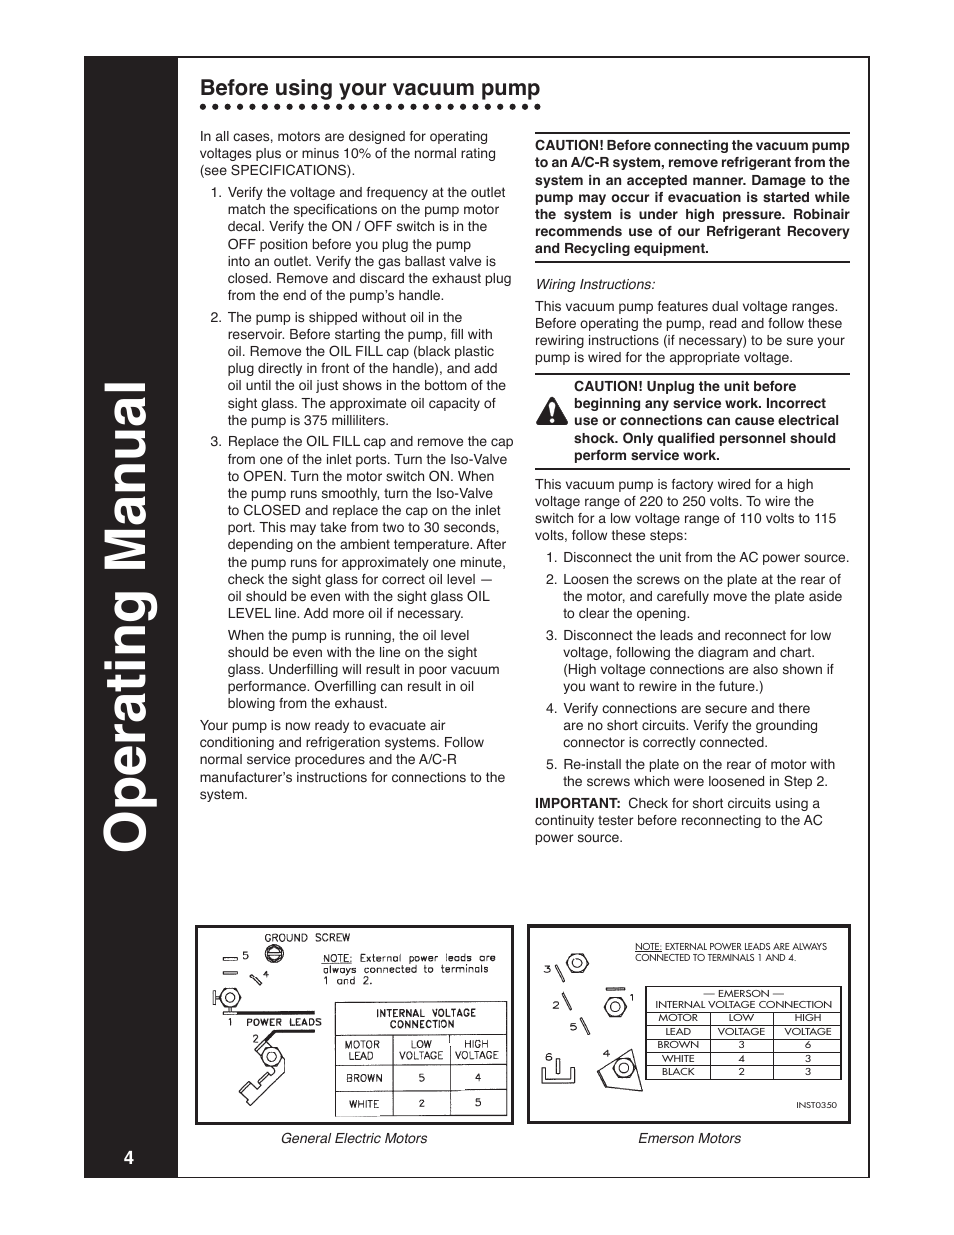 robinair model 15401 page4 operating manual, before using your vacuum pump robinair model